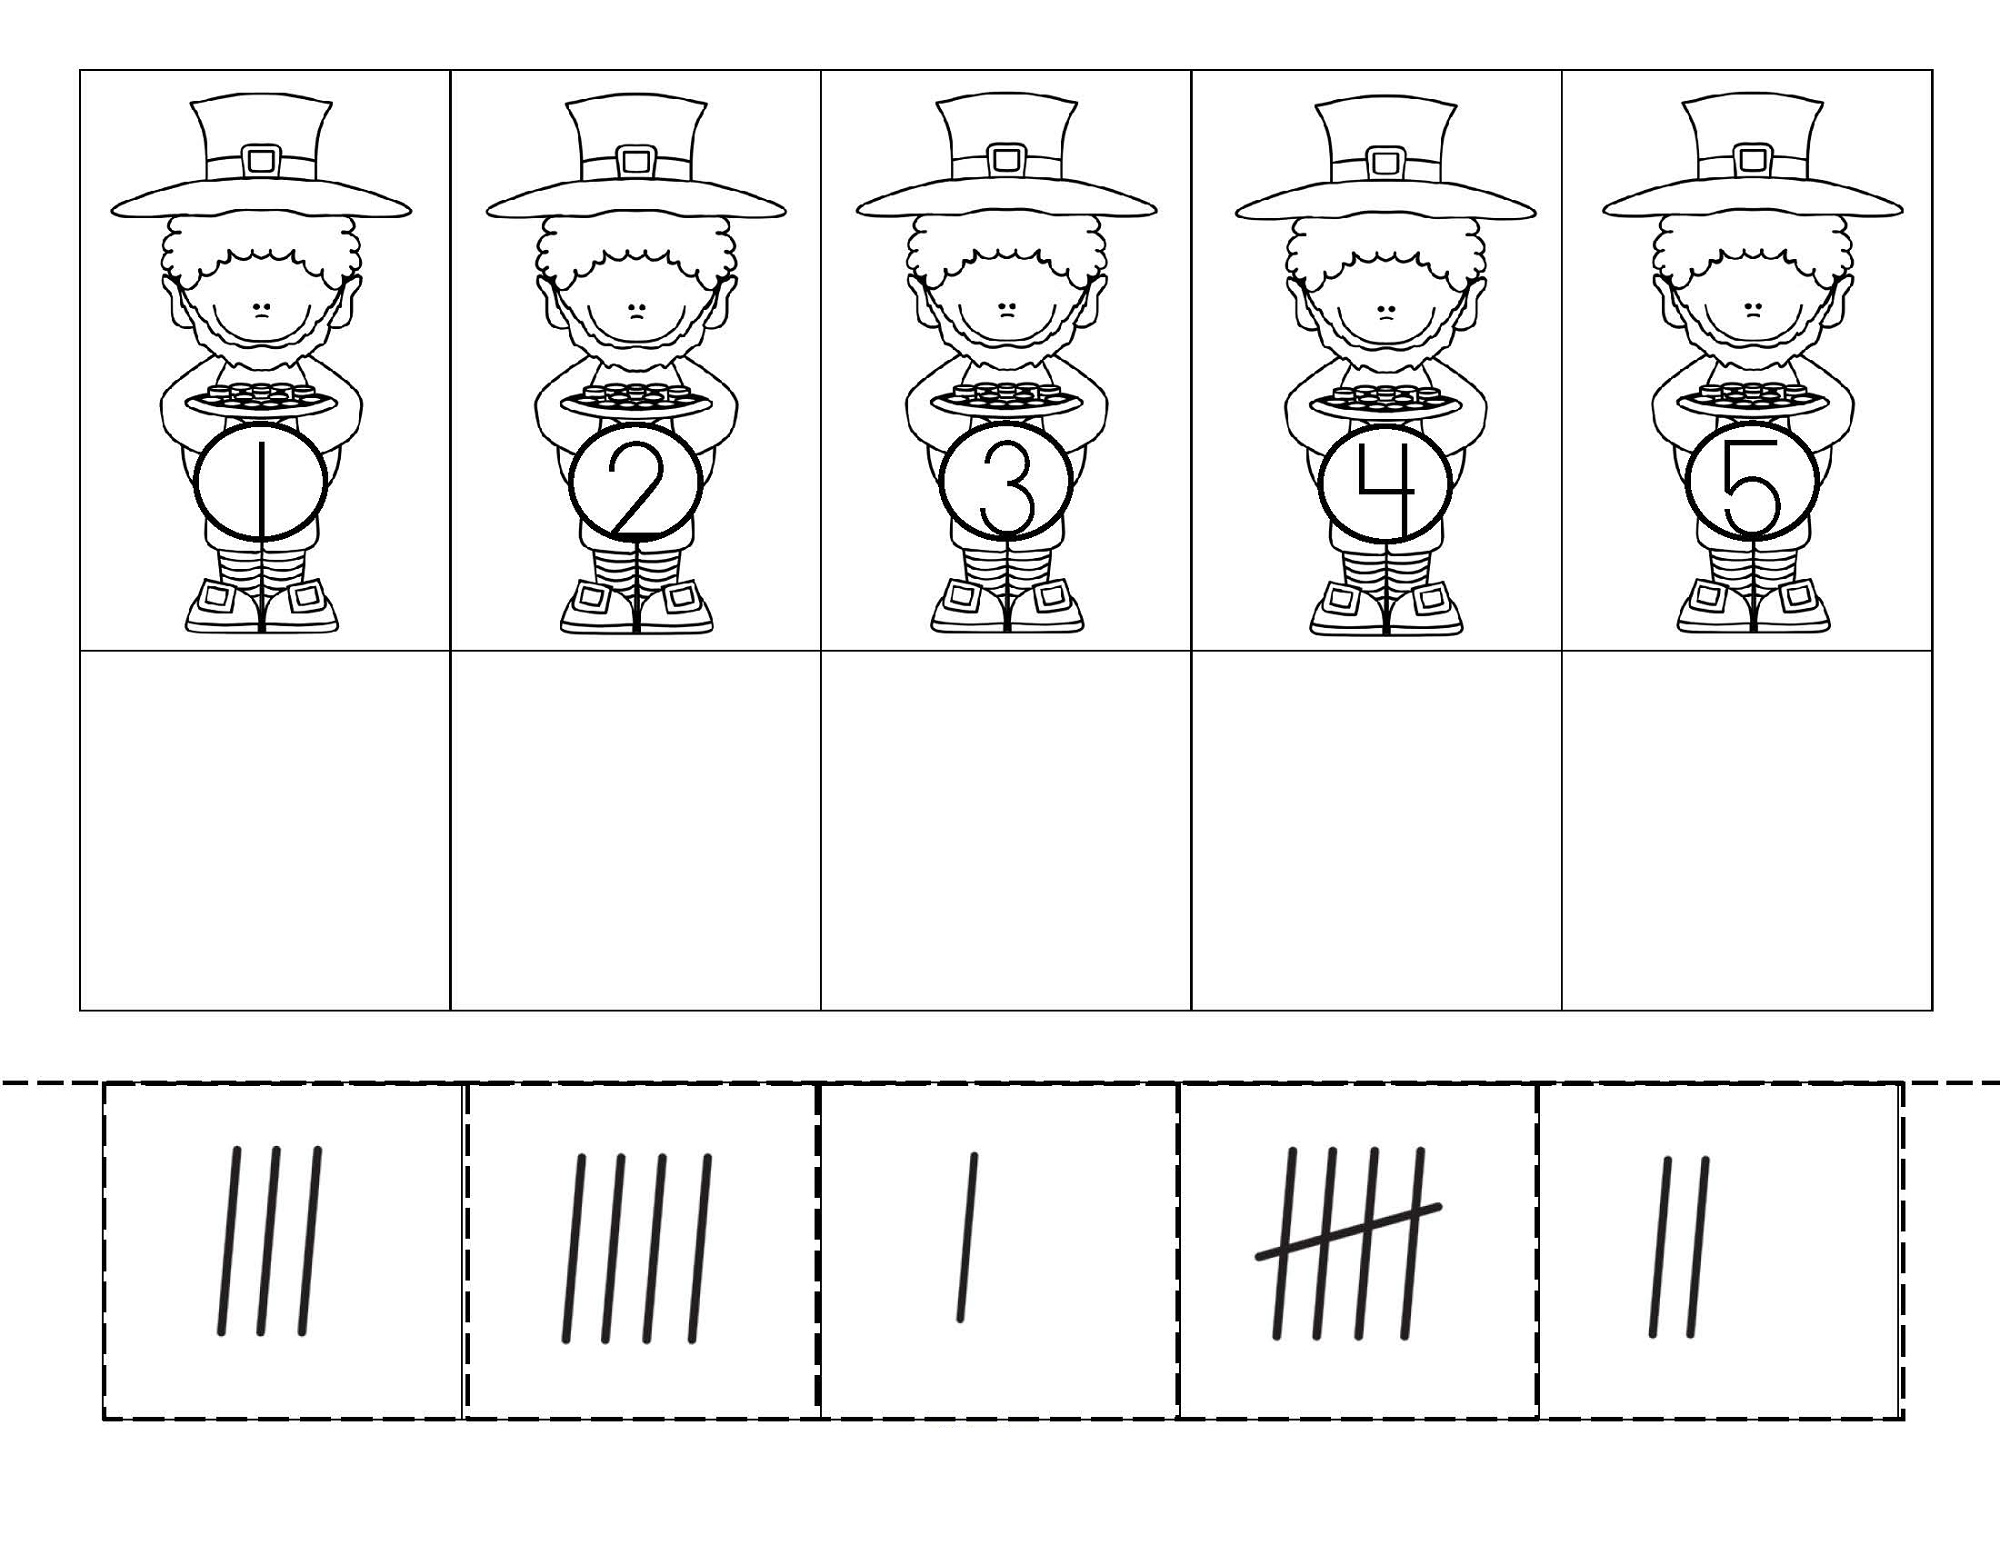 tally charts worksheets for kids